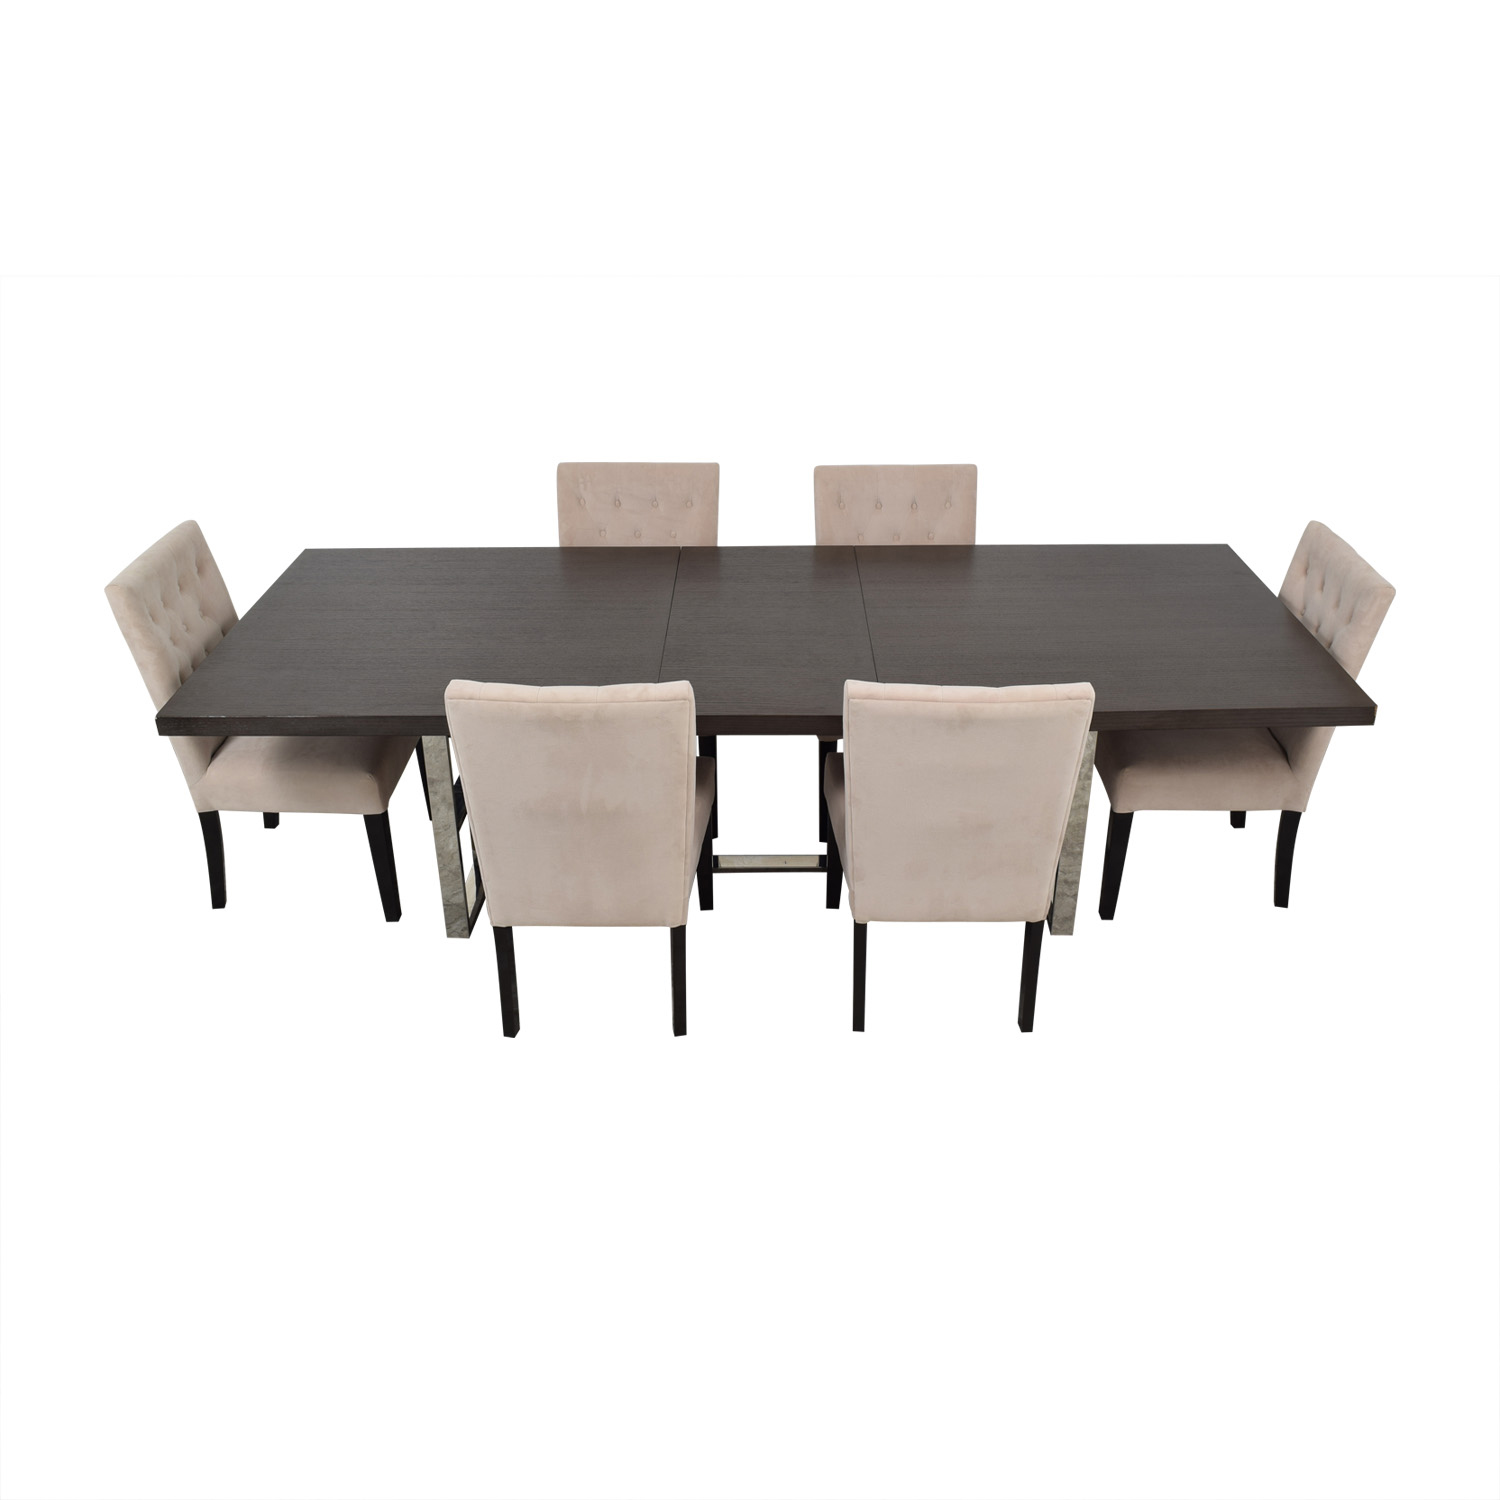 Z Gallerie Z Gallerie Rylan Extentable Dining Set with Beige Tufted Chairs on sale